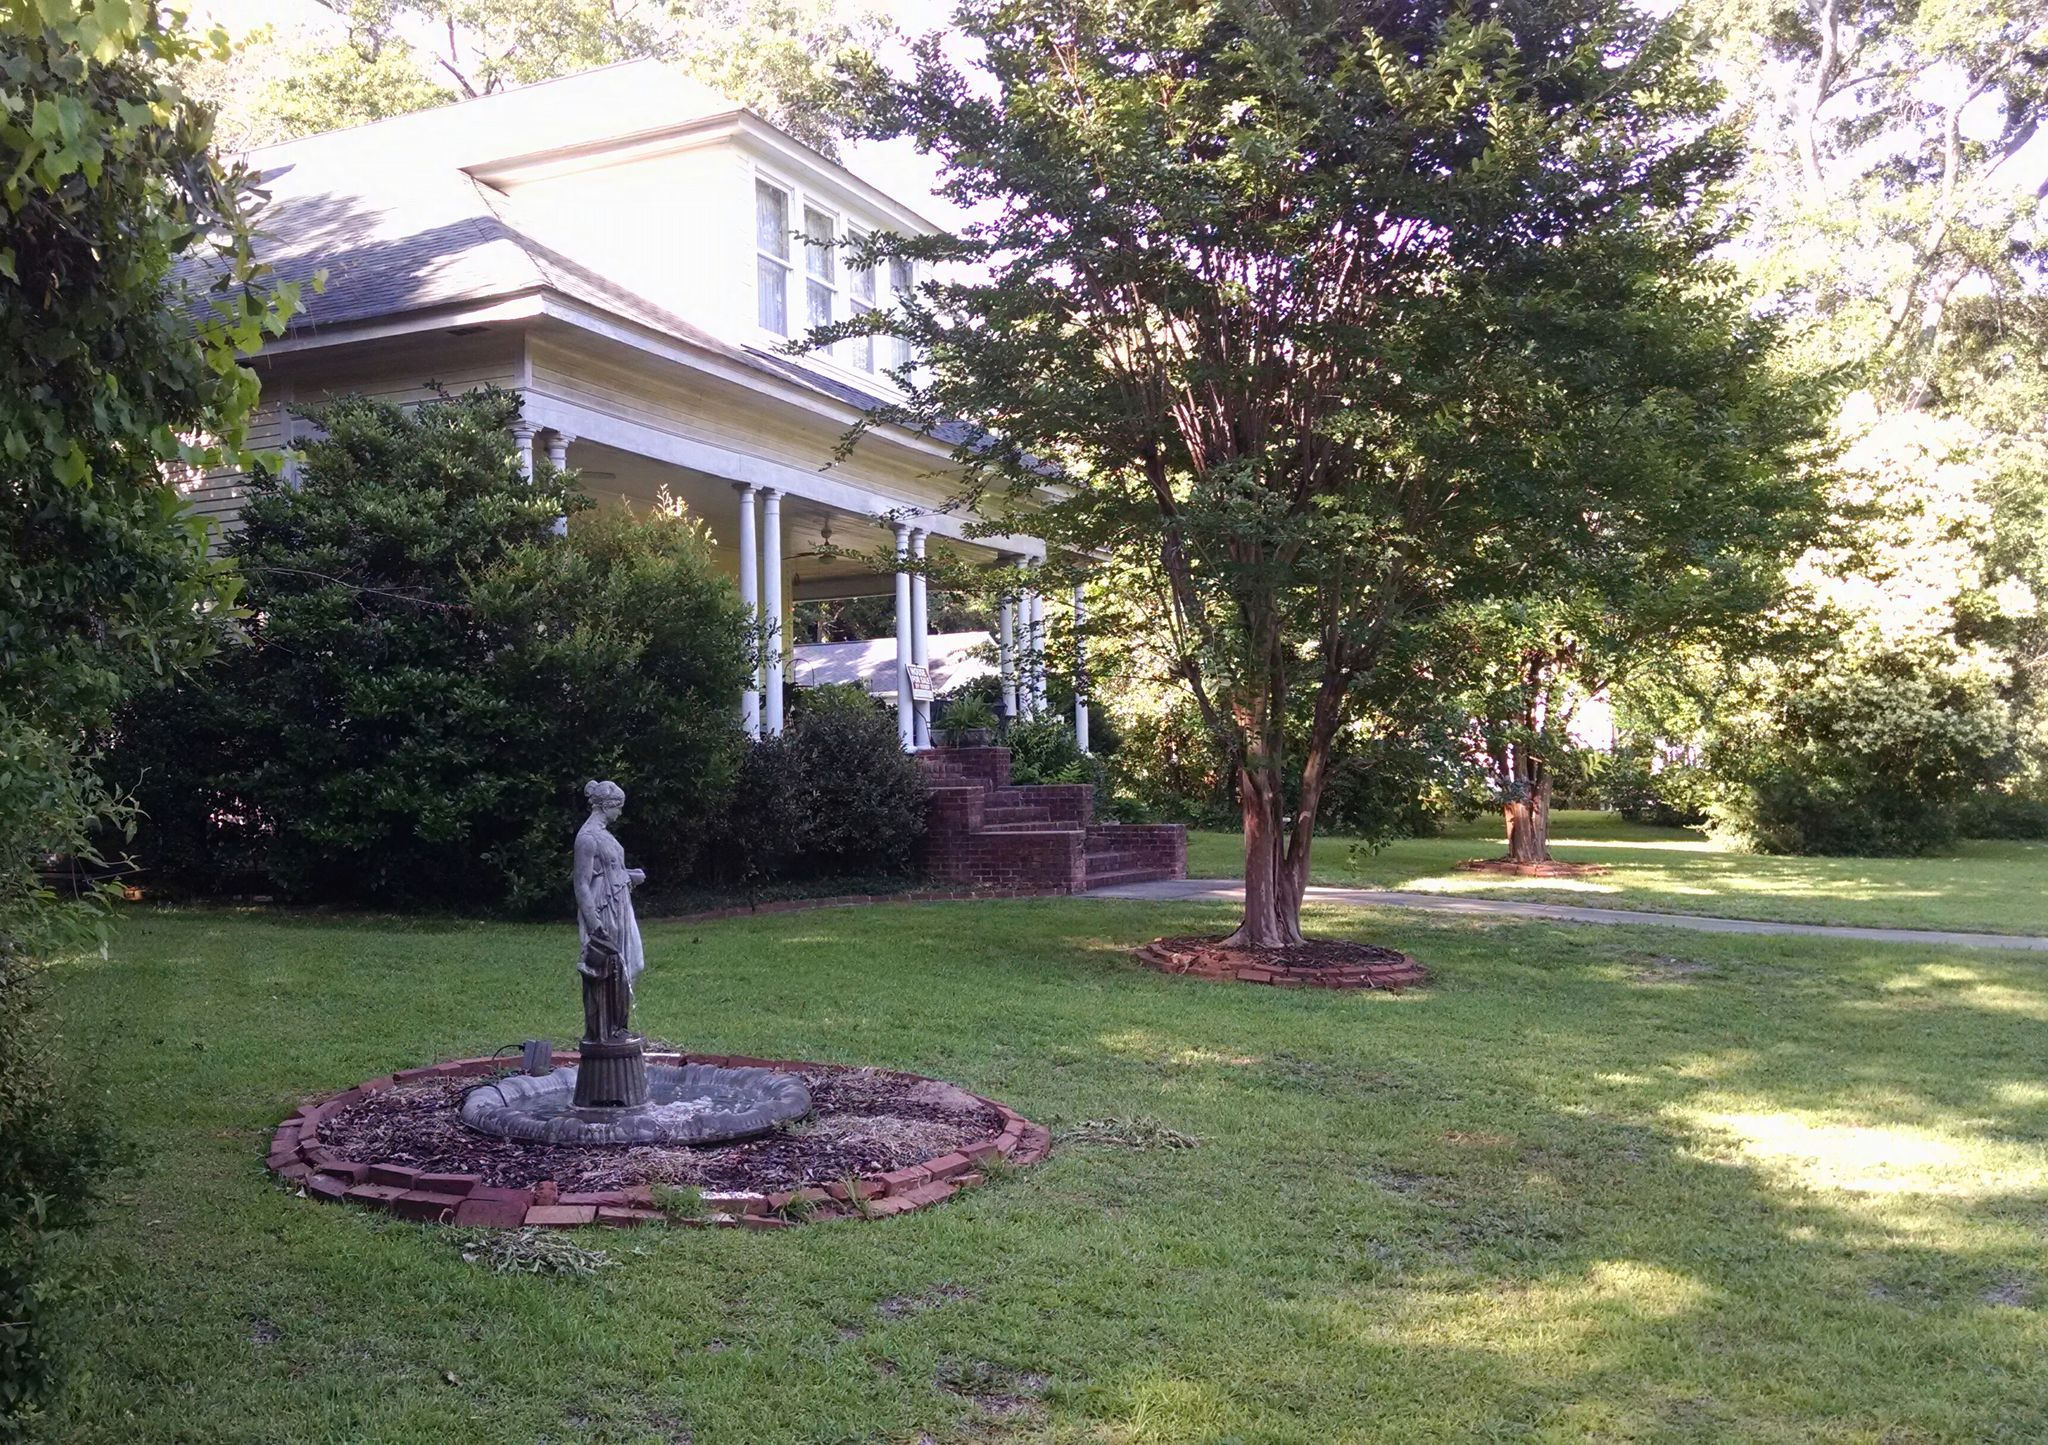 This Can Be A New Image Of Patio Homes for Sale Easley Sc